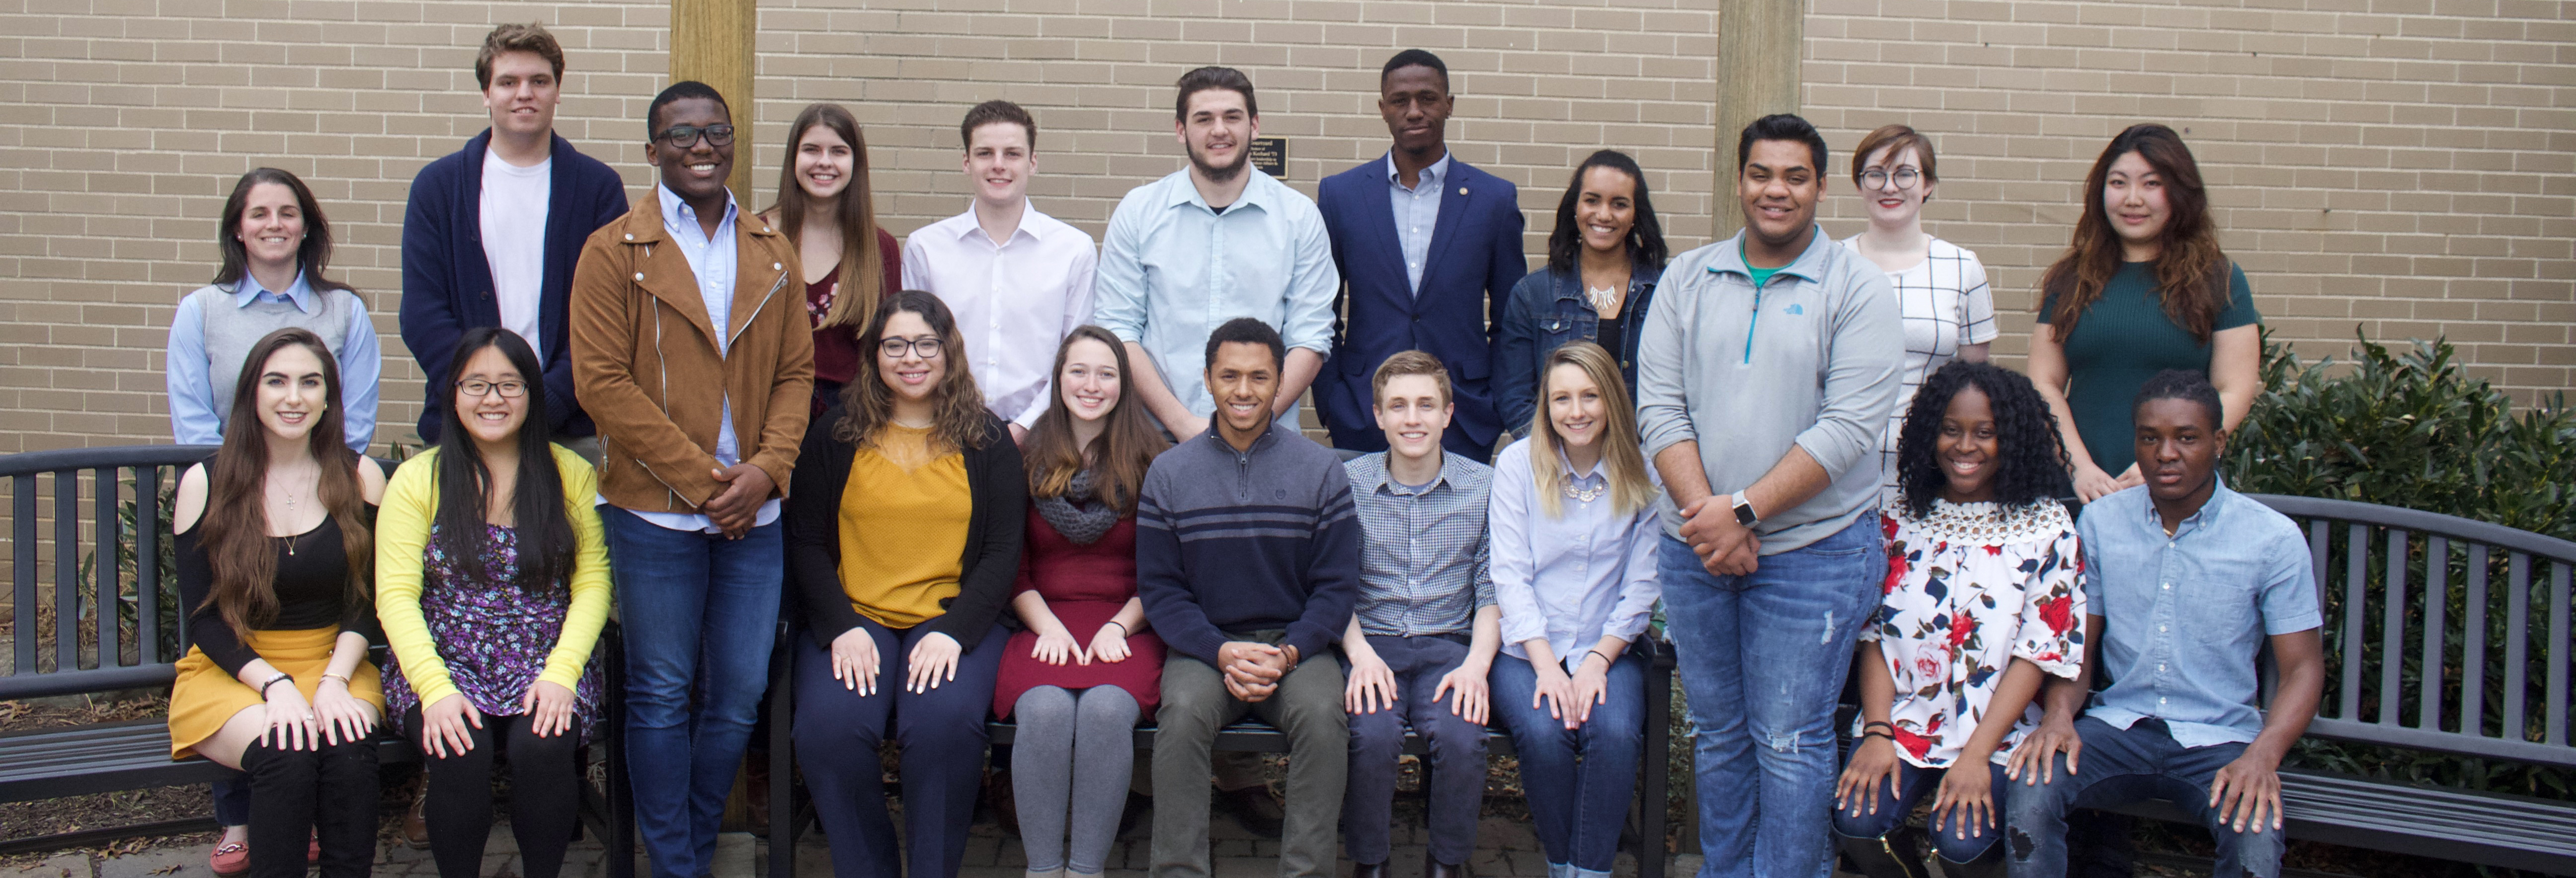 United Student Government 2018-2019 Board